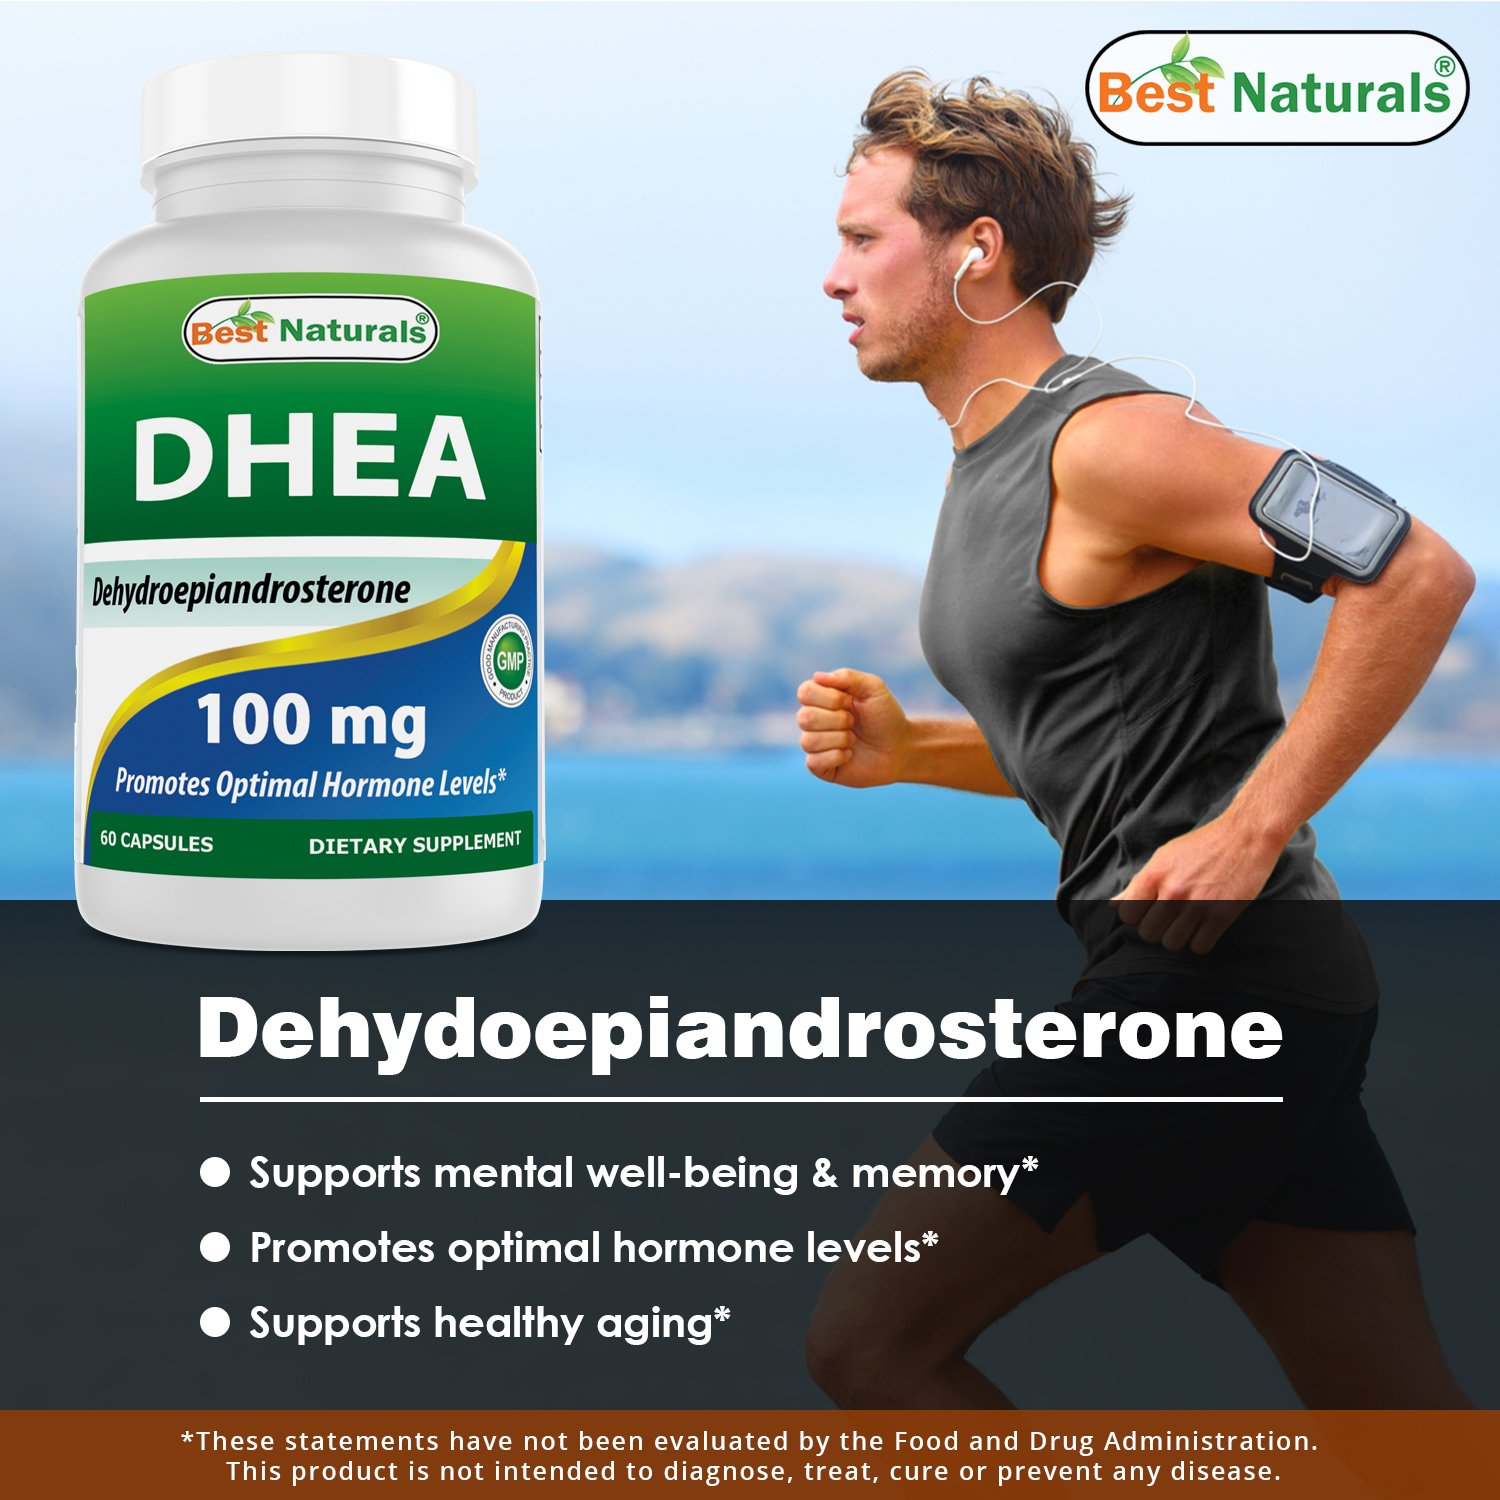 Best Naturals DHEA 100mg Supplement 60 Capsules  Supports Balanced Hormone Levels for Men  Women